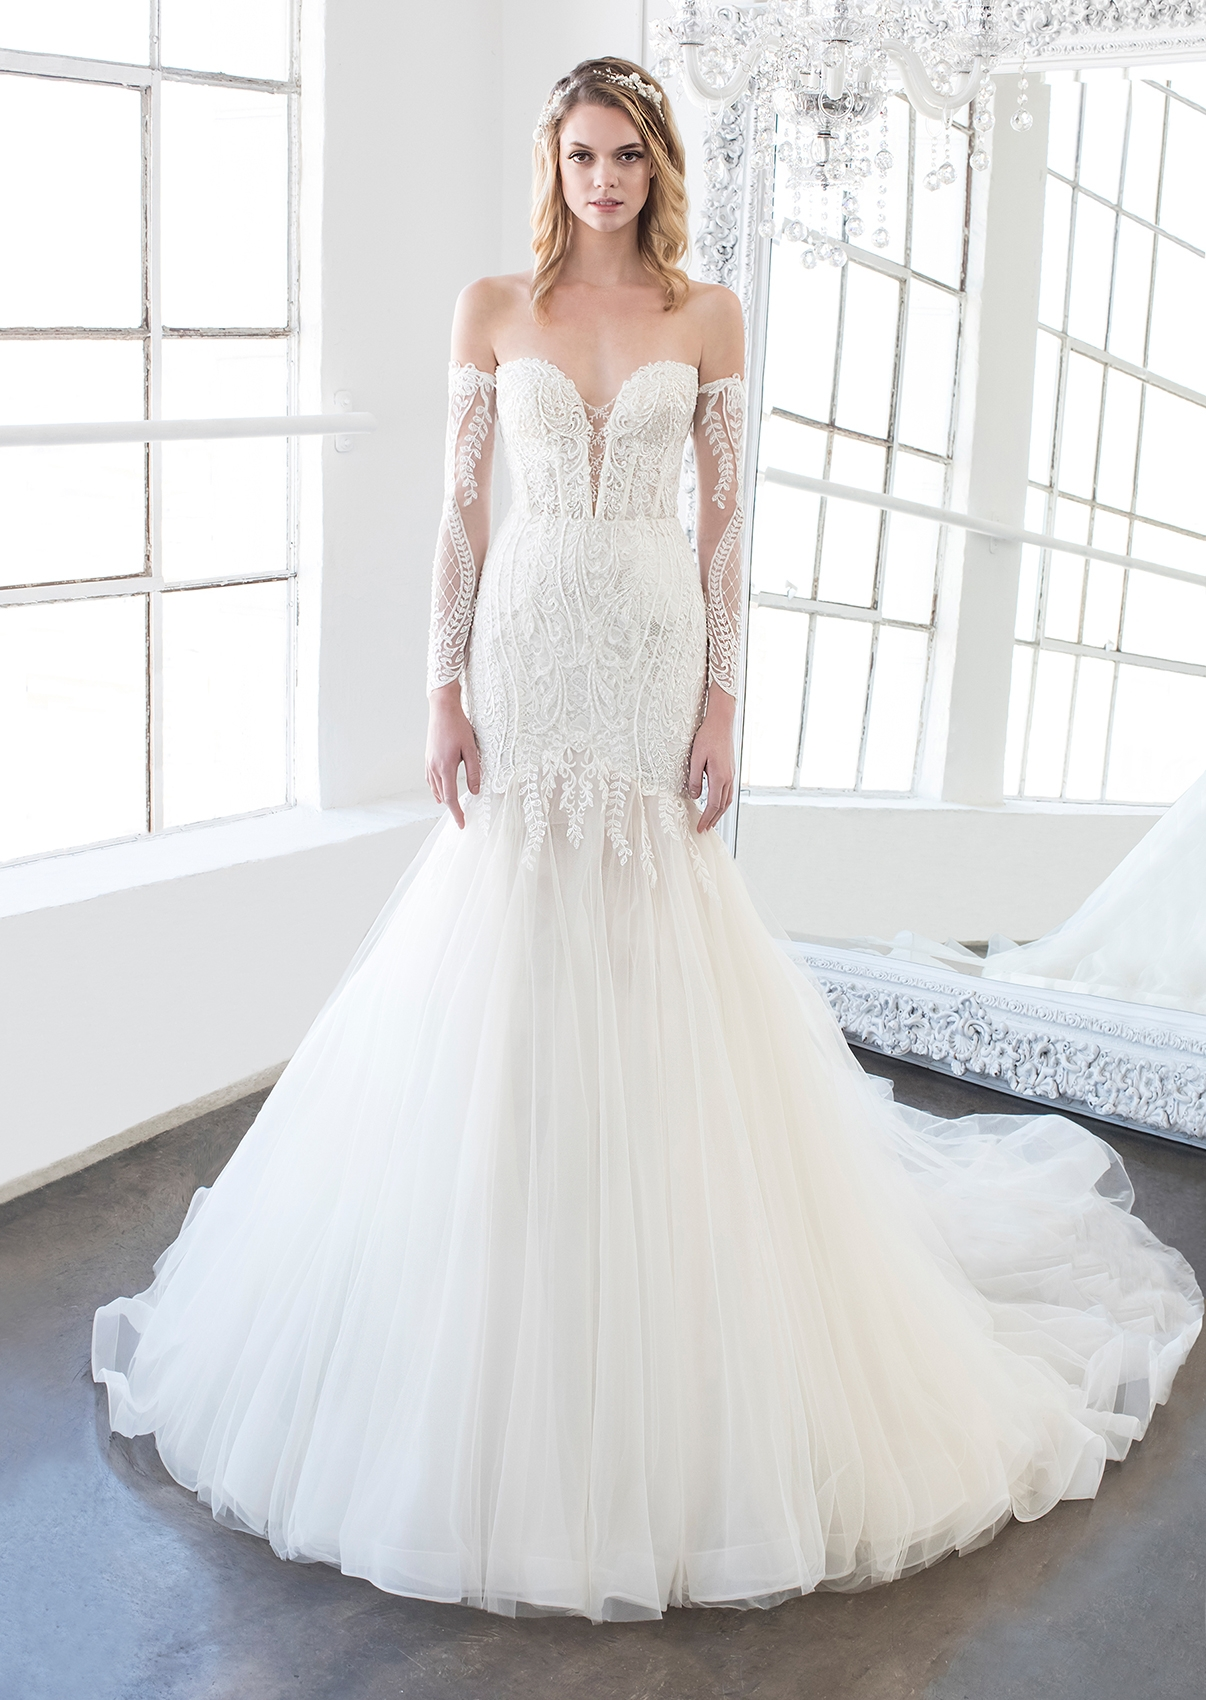 Dress Shopping Tips for the Bride-To-Be | Enchanted Brides